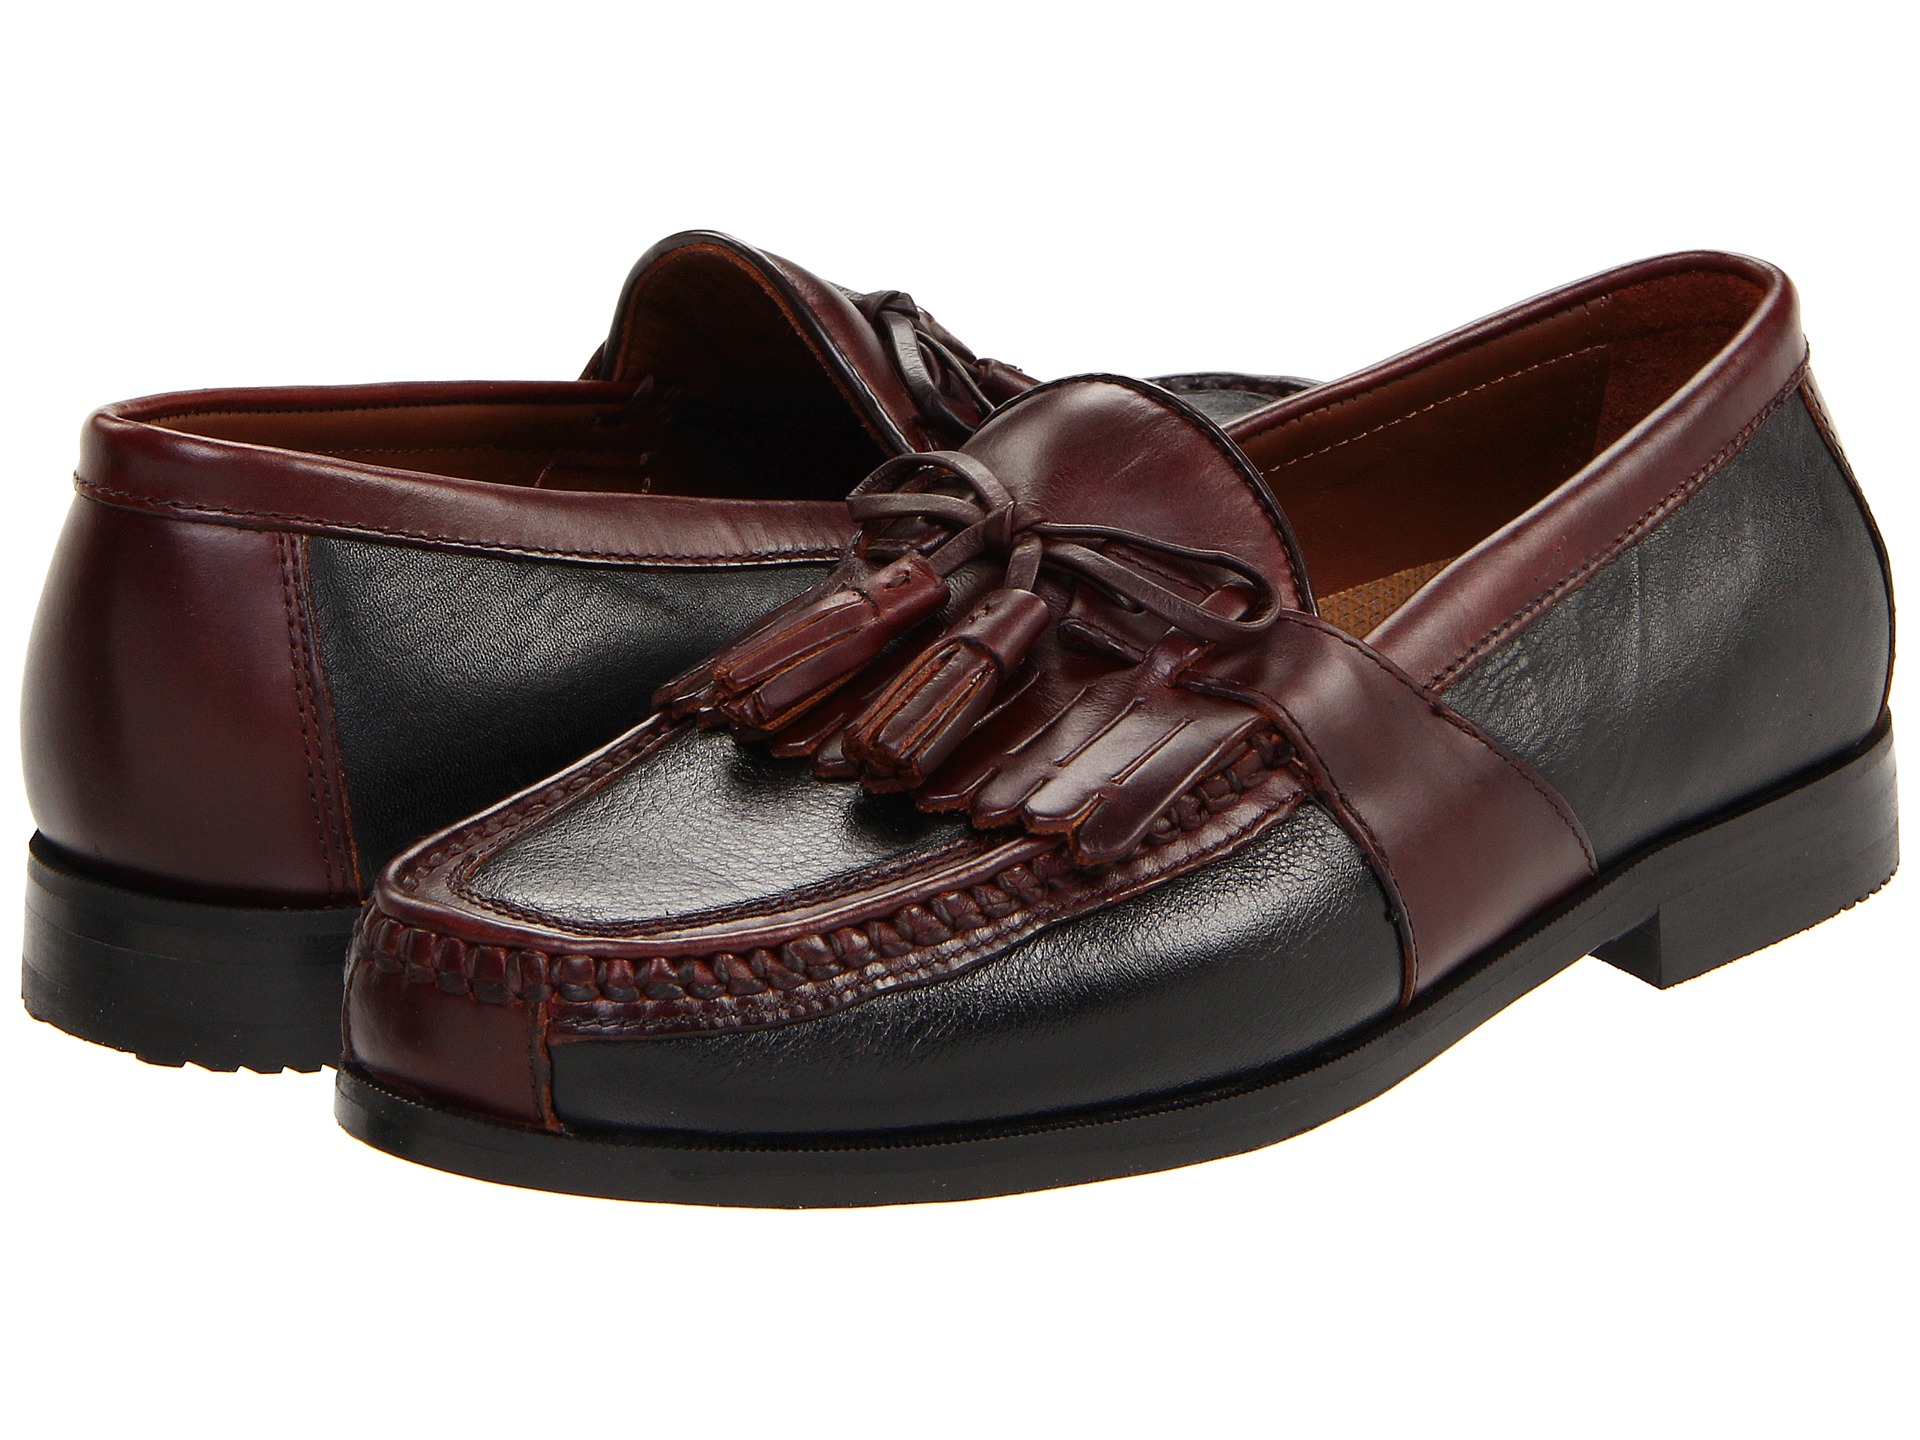 aragon men Aragon red and midbrown looking for men's dress shoes complete your outfit with our red/brown hand-painted monk straps for men buy magnanni shoes today.